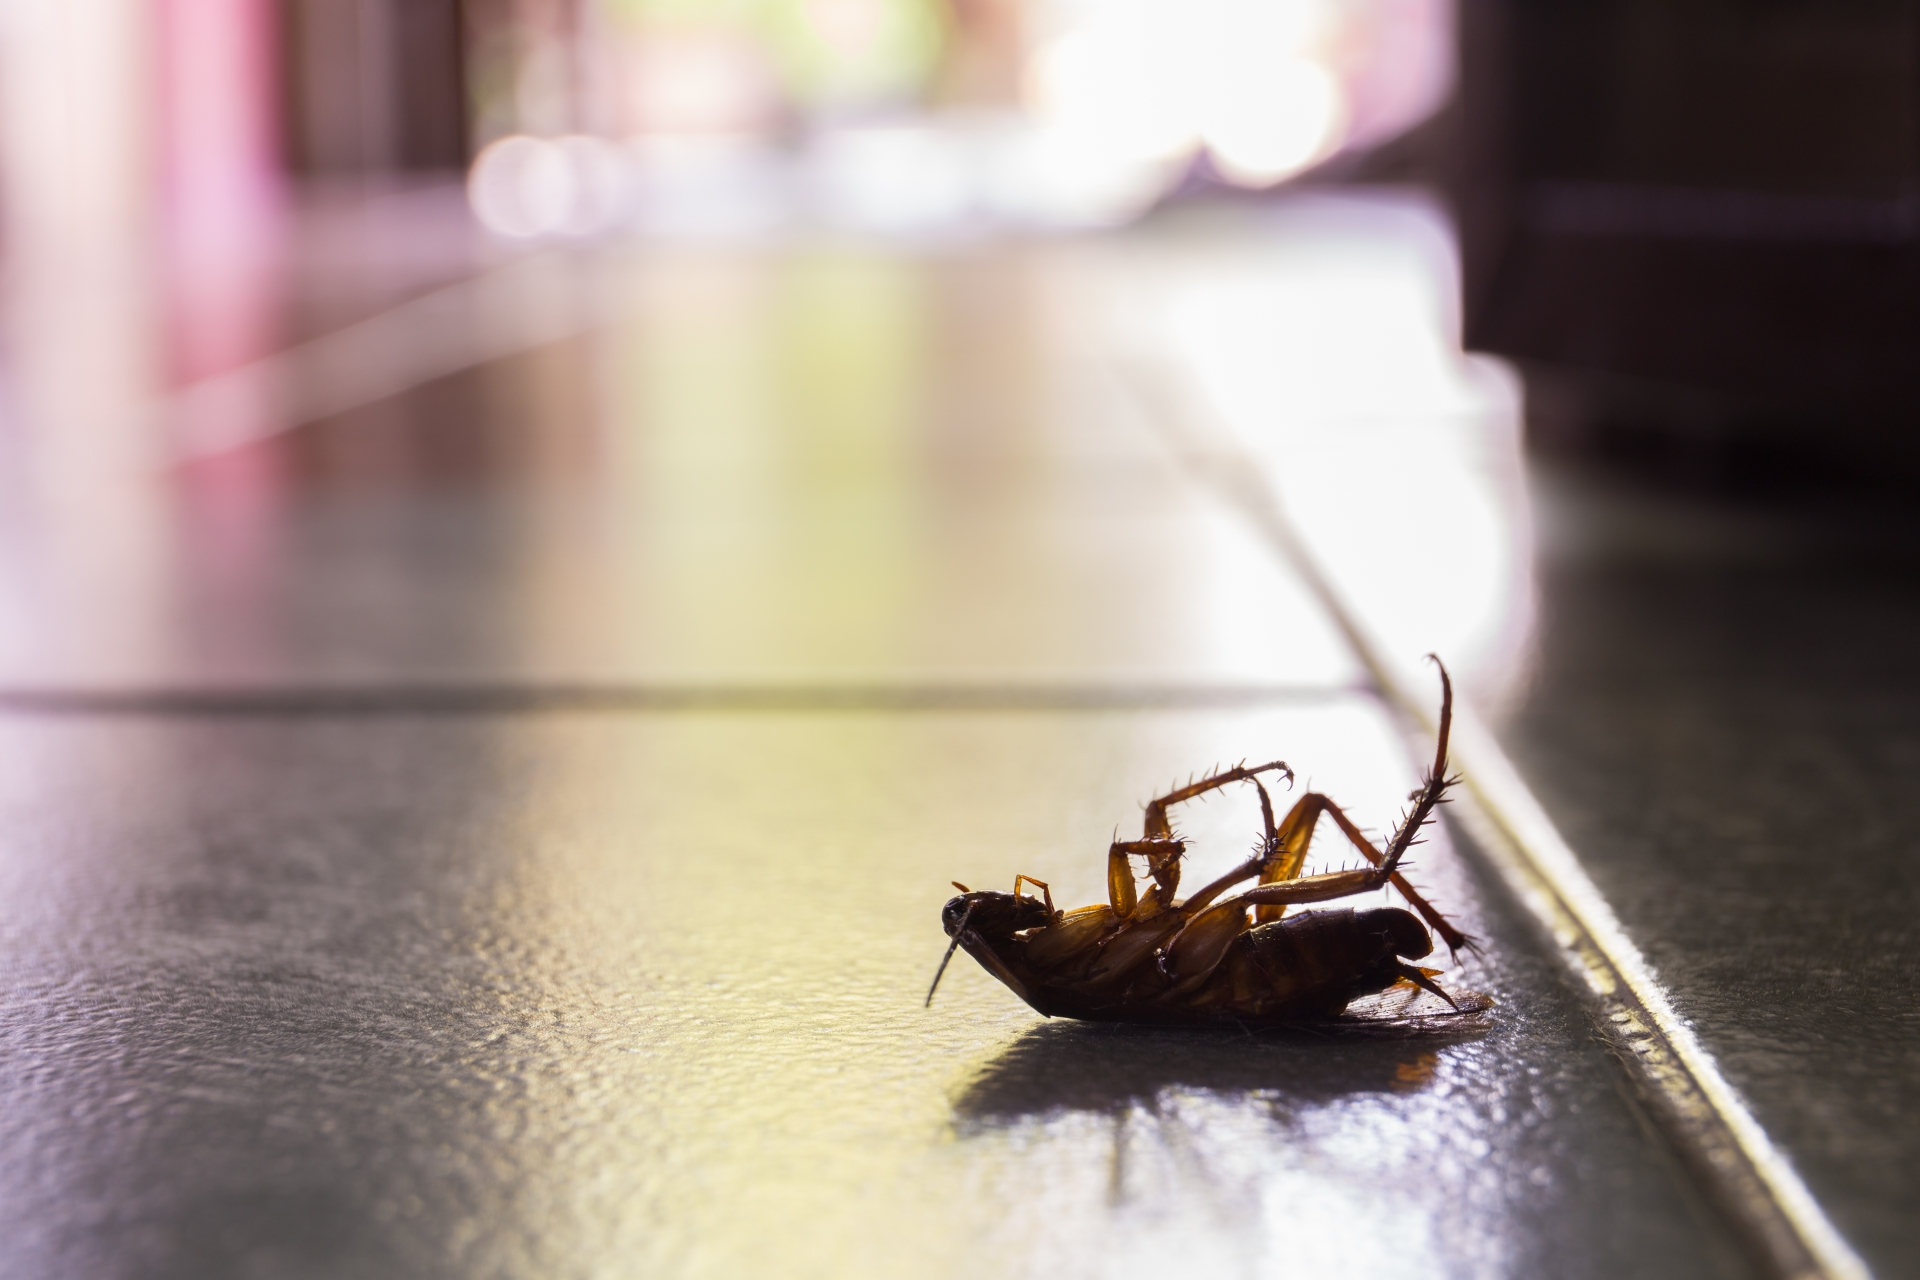 Cockroach Control, Pest Control in Moorgate, Liverpool Street, EC2. Call Now 020 8166 9746